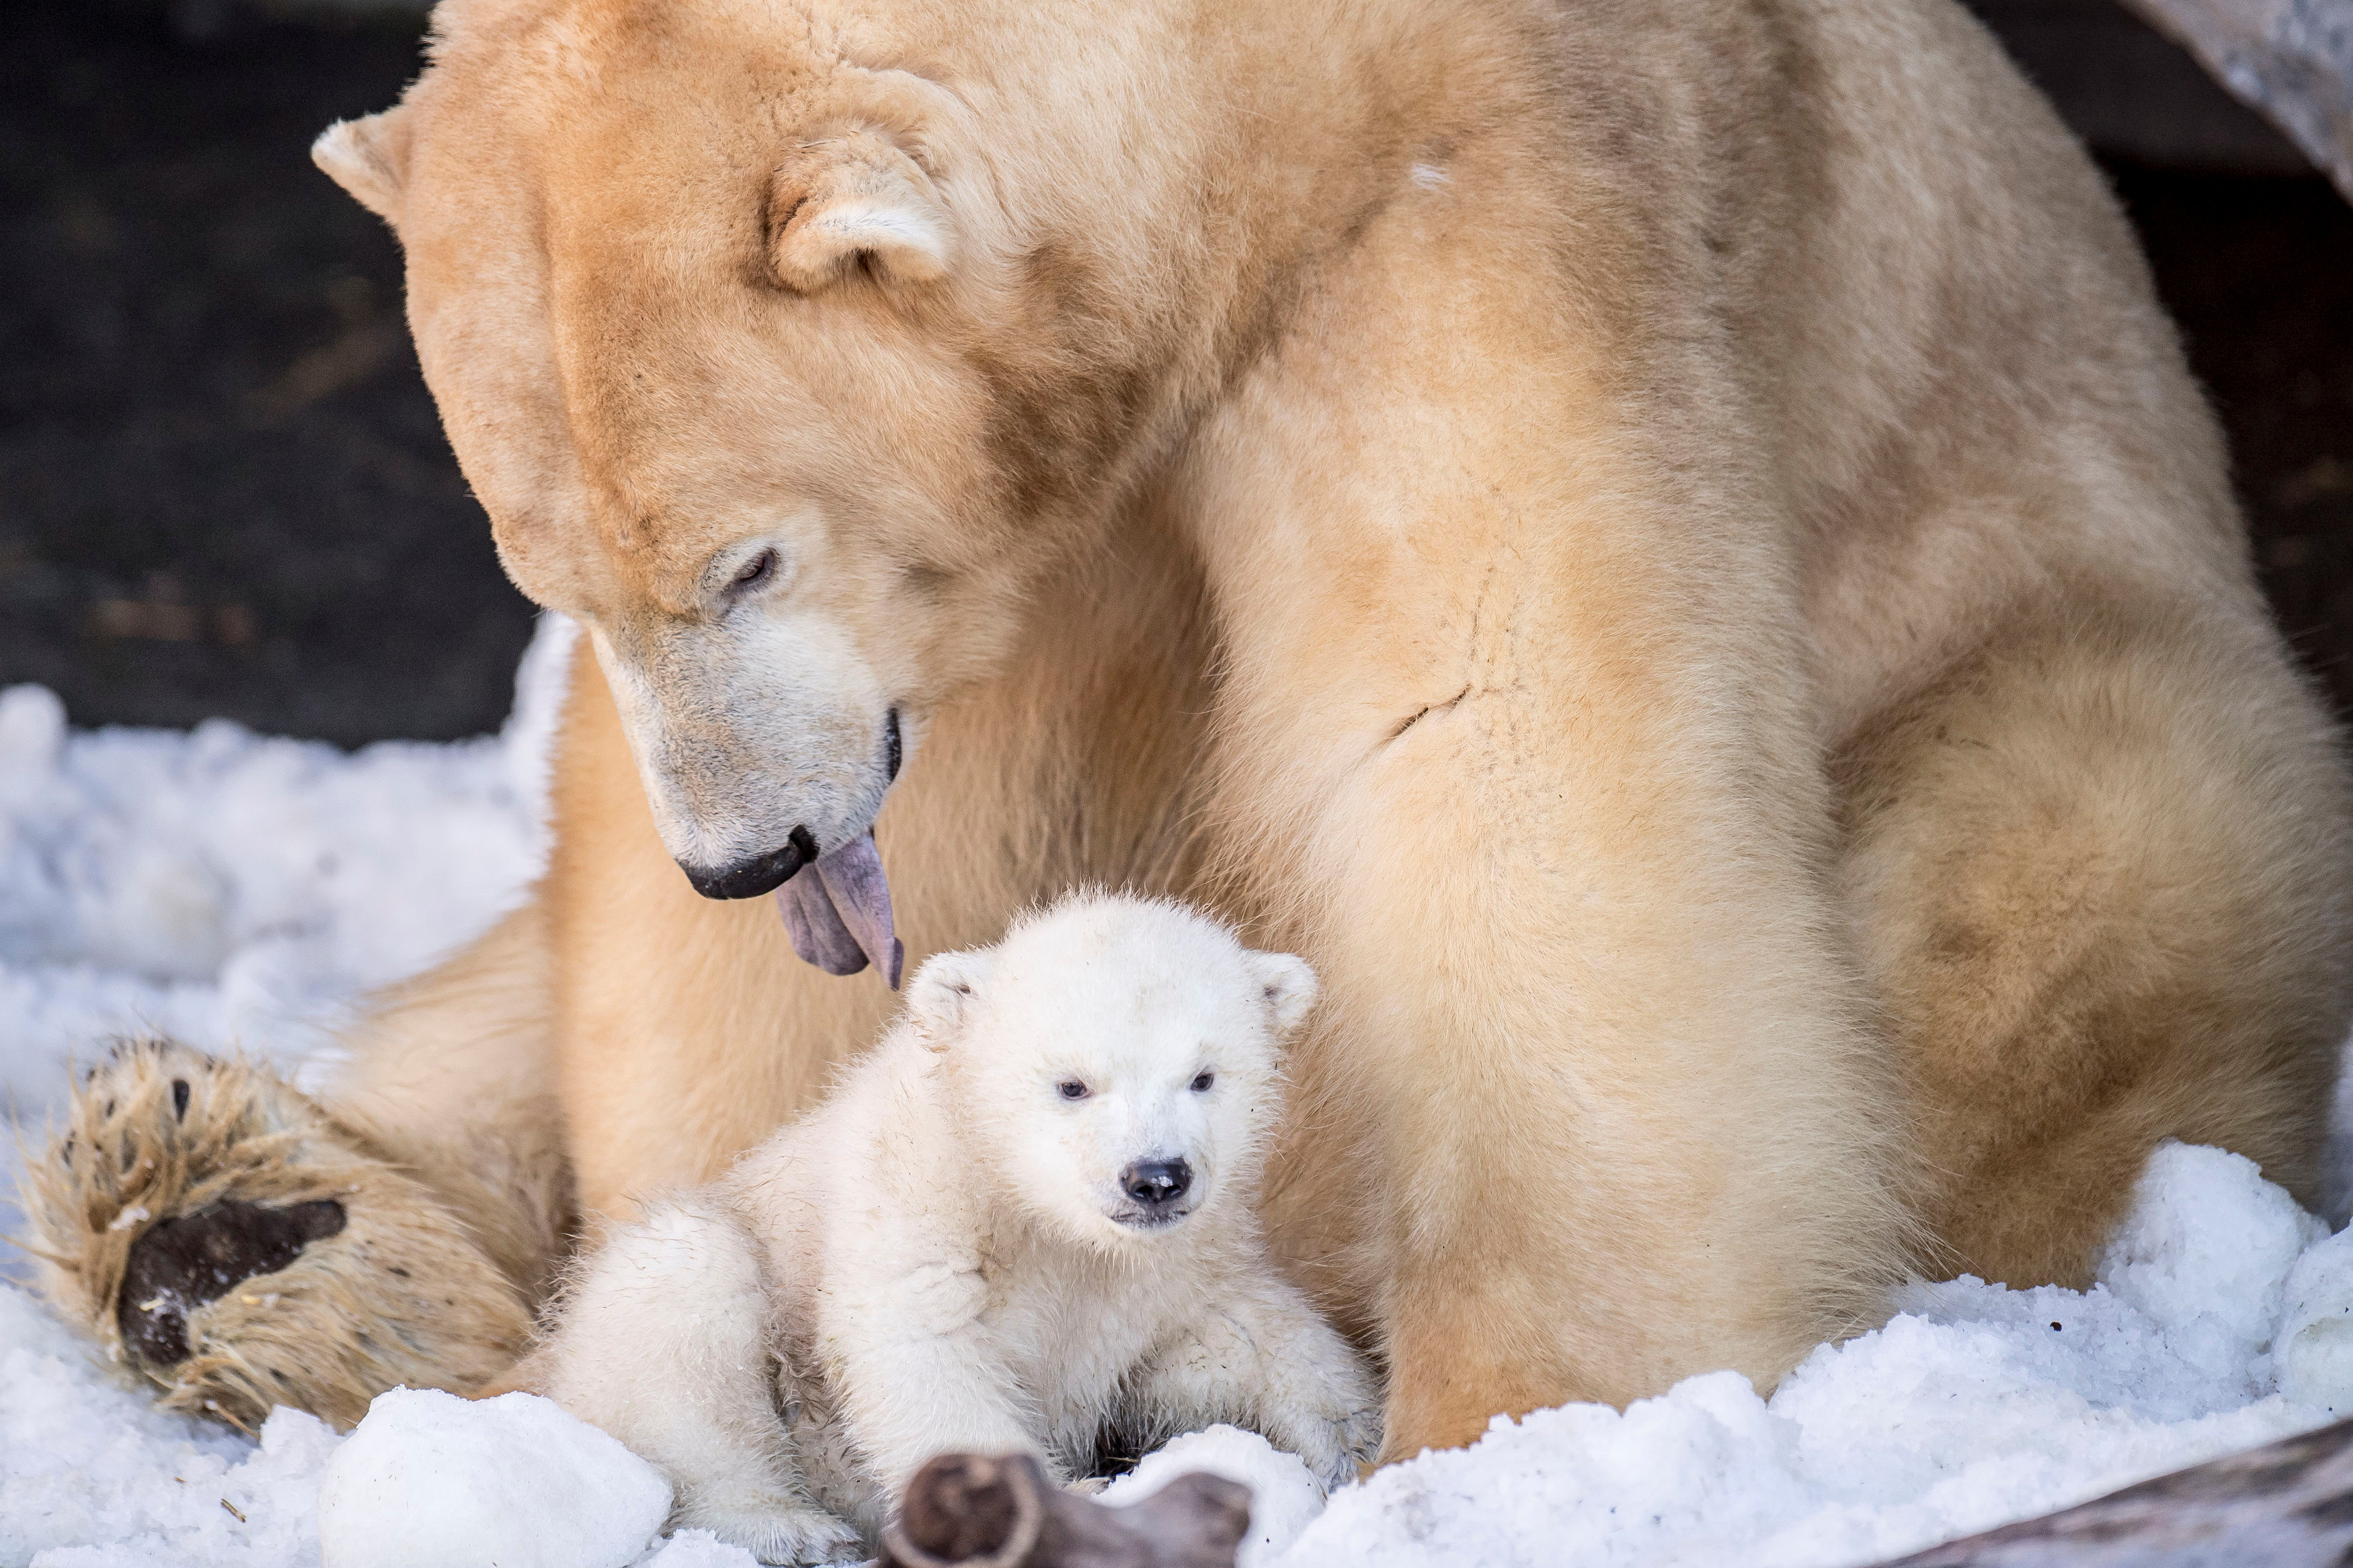 A polar bear cub comes outside for the first time at the Copenhagen Zoo